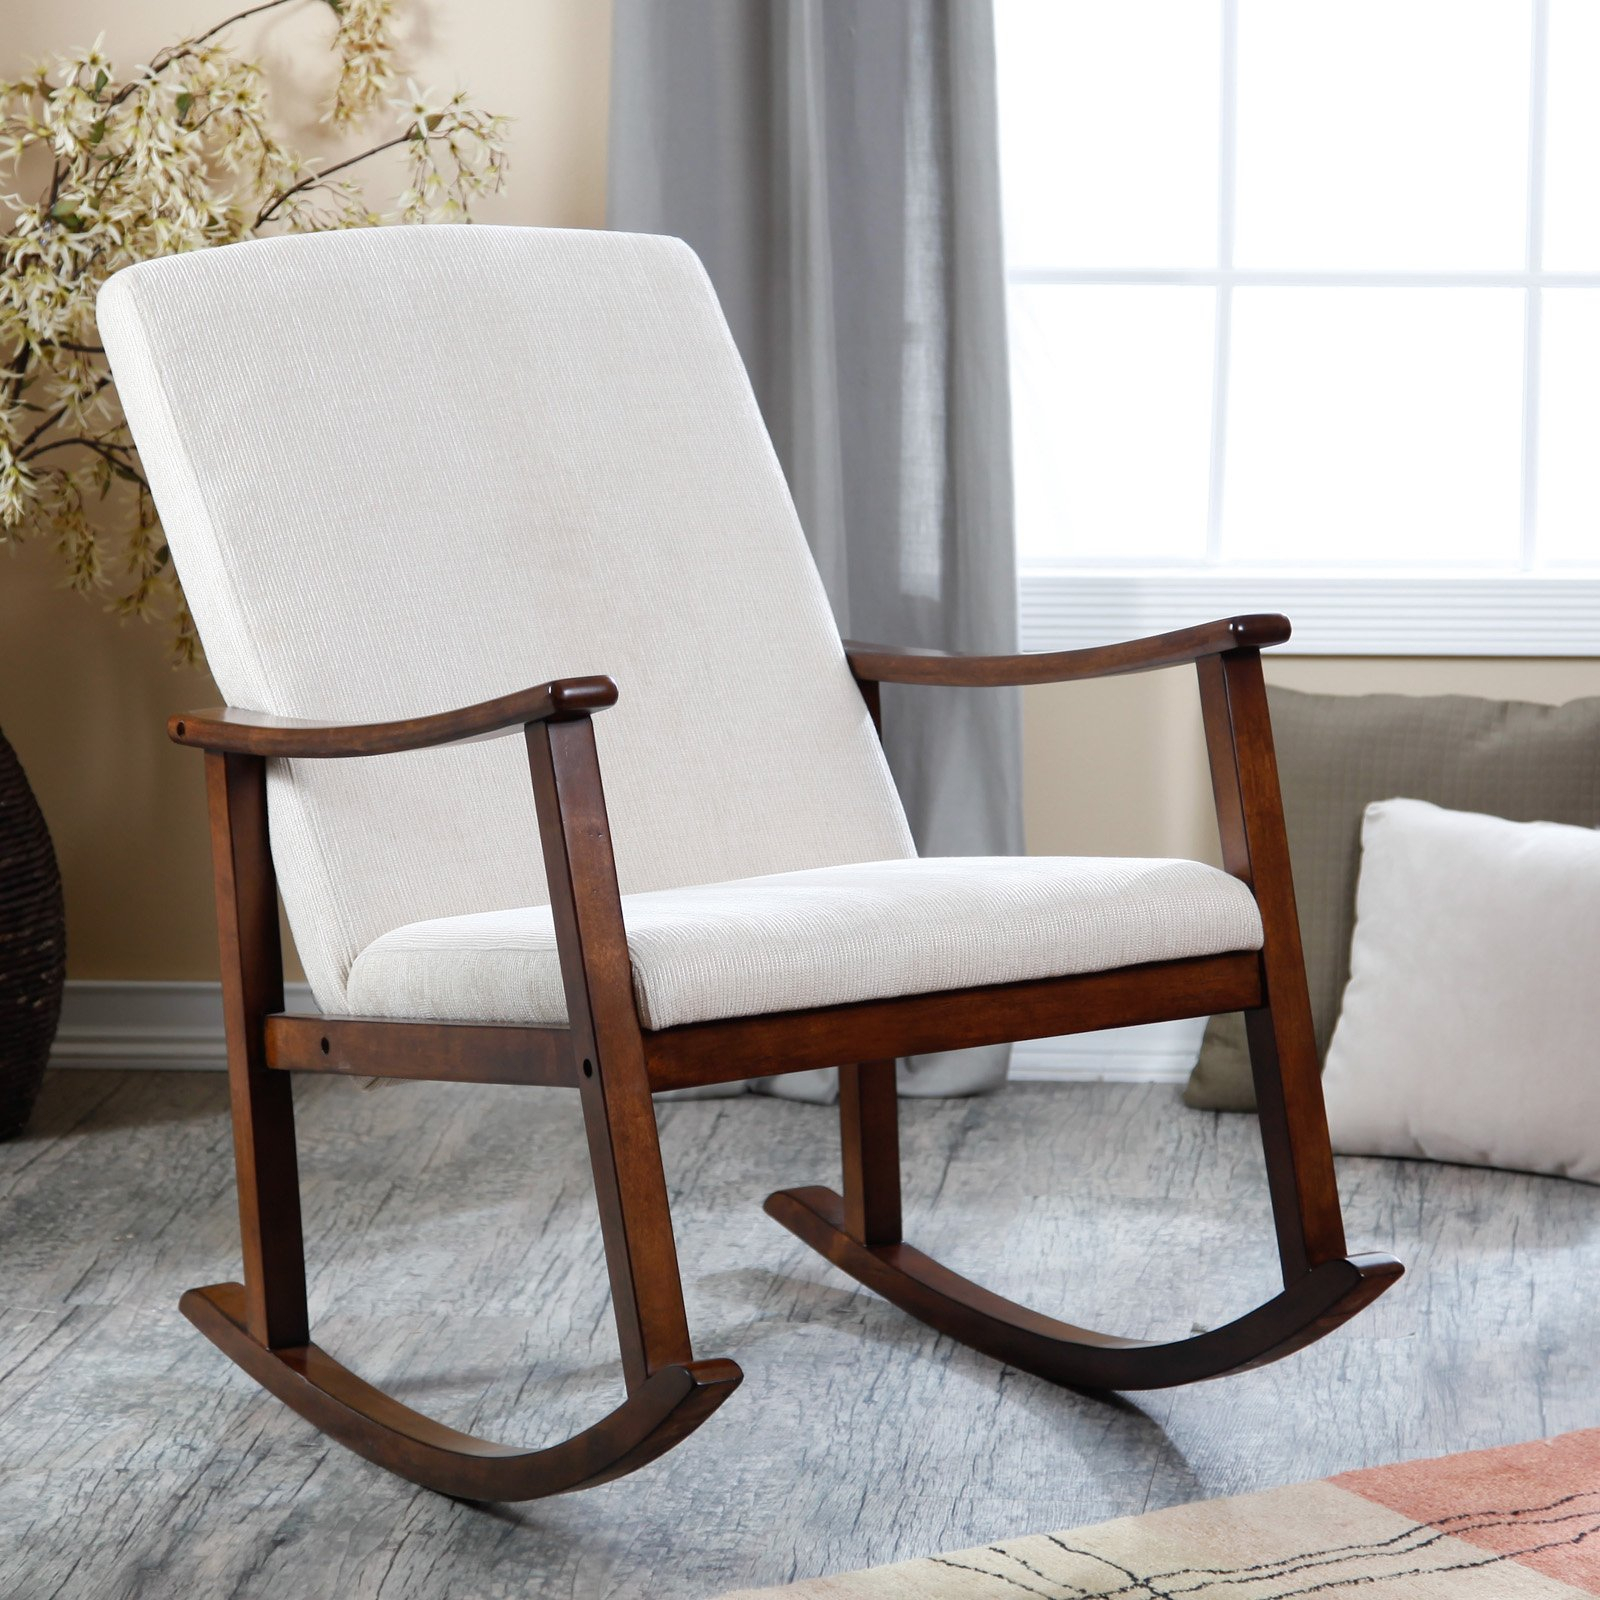 Furniture: Interesting Lowes Rocking Chairs For Home Inside Rocking Chairs, Cream And Brown (View 13 of 20)